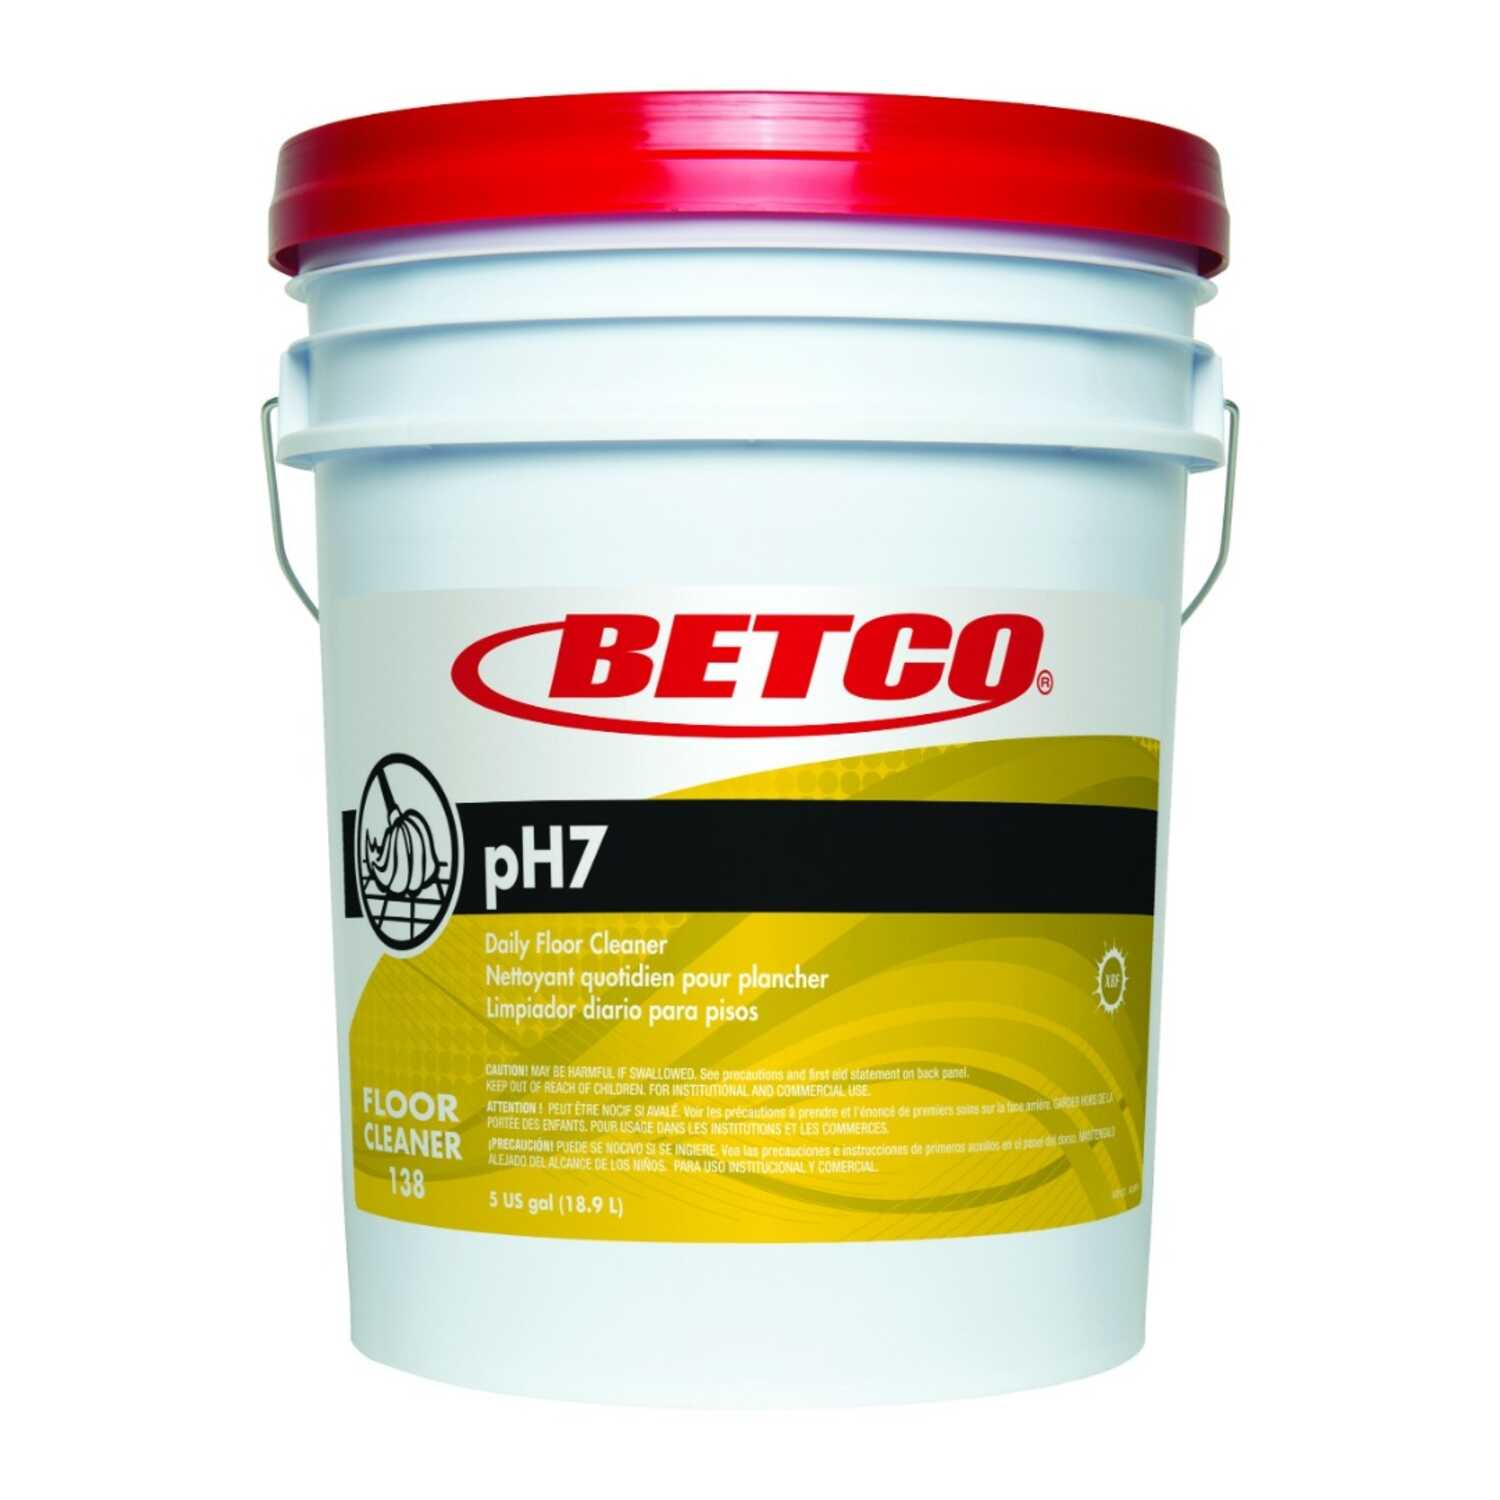 Betco  pH7  Lemon Scent Floor Cleaner  5 gal. Liquid